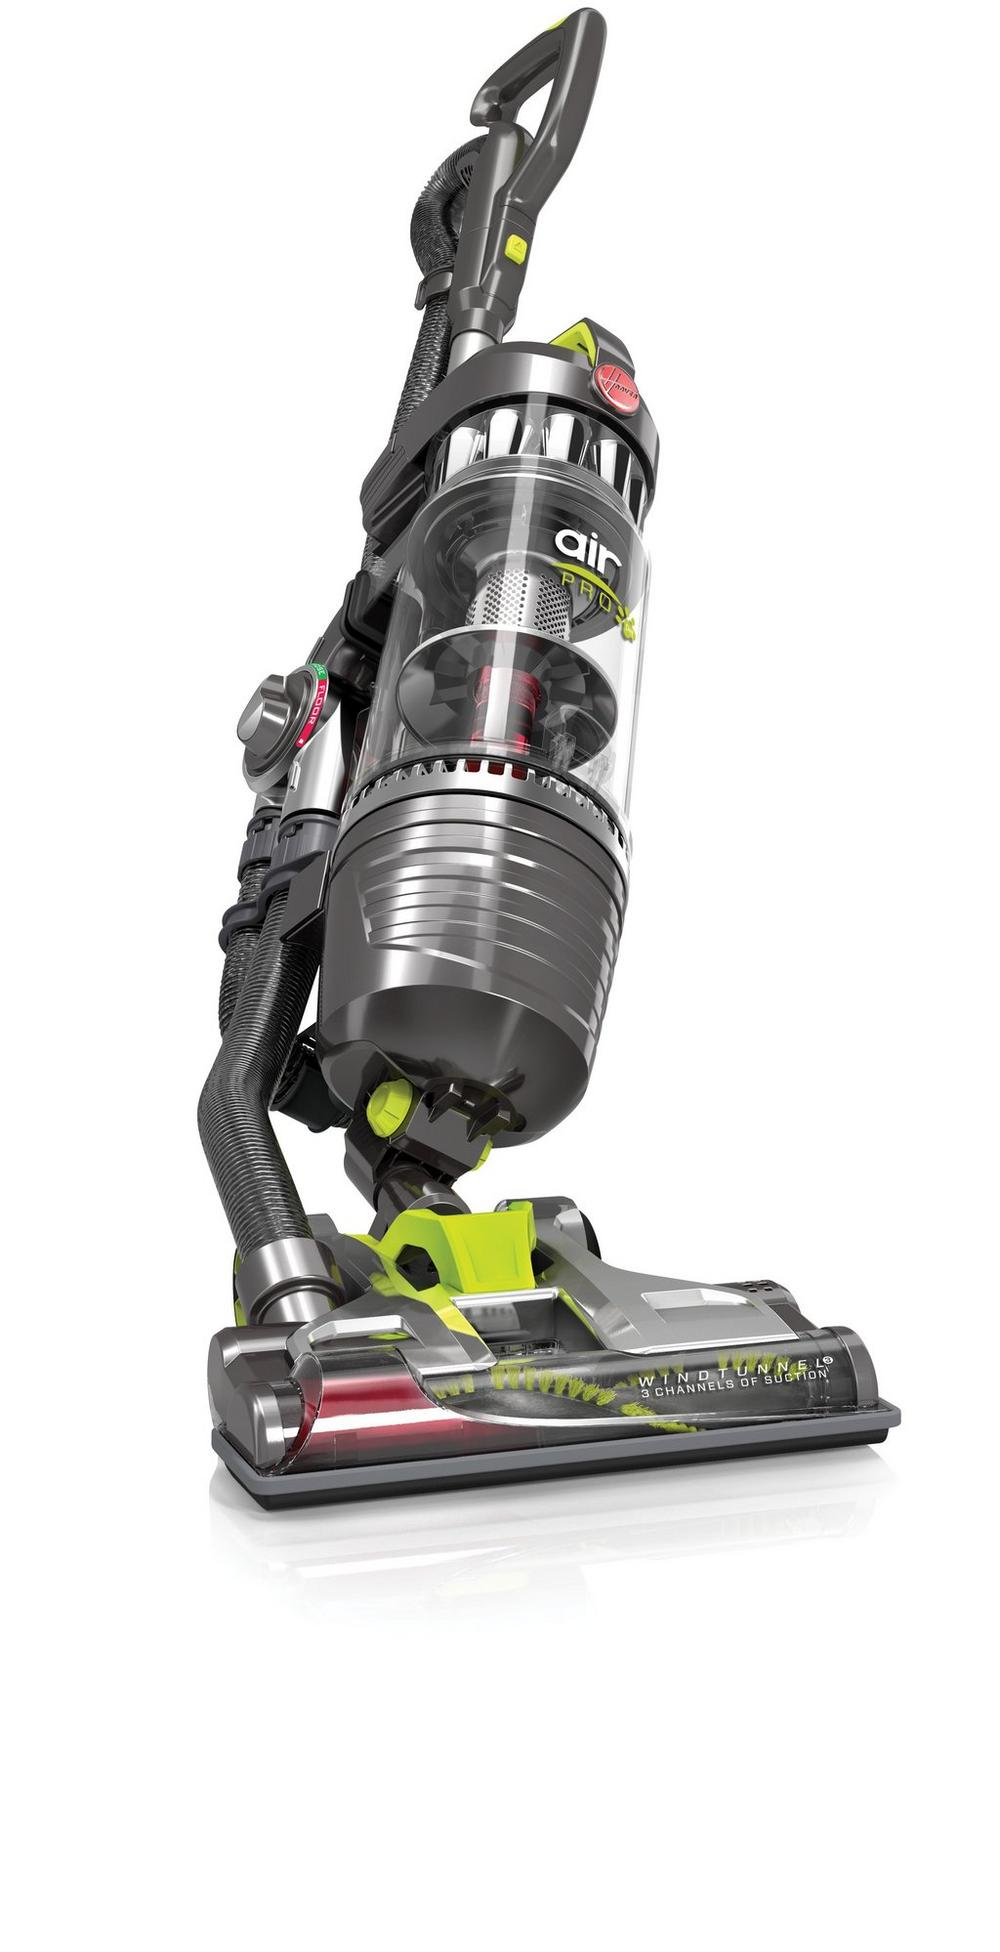 Reconditioned WindTunnel Air Pro Steerable Upright Vacuum2